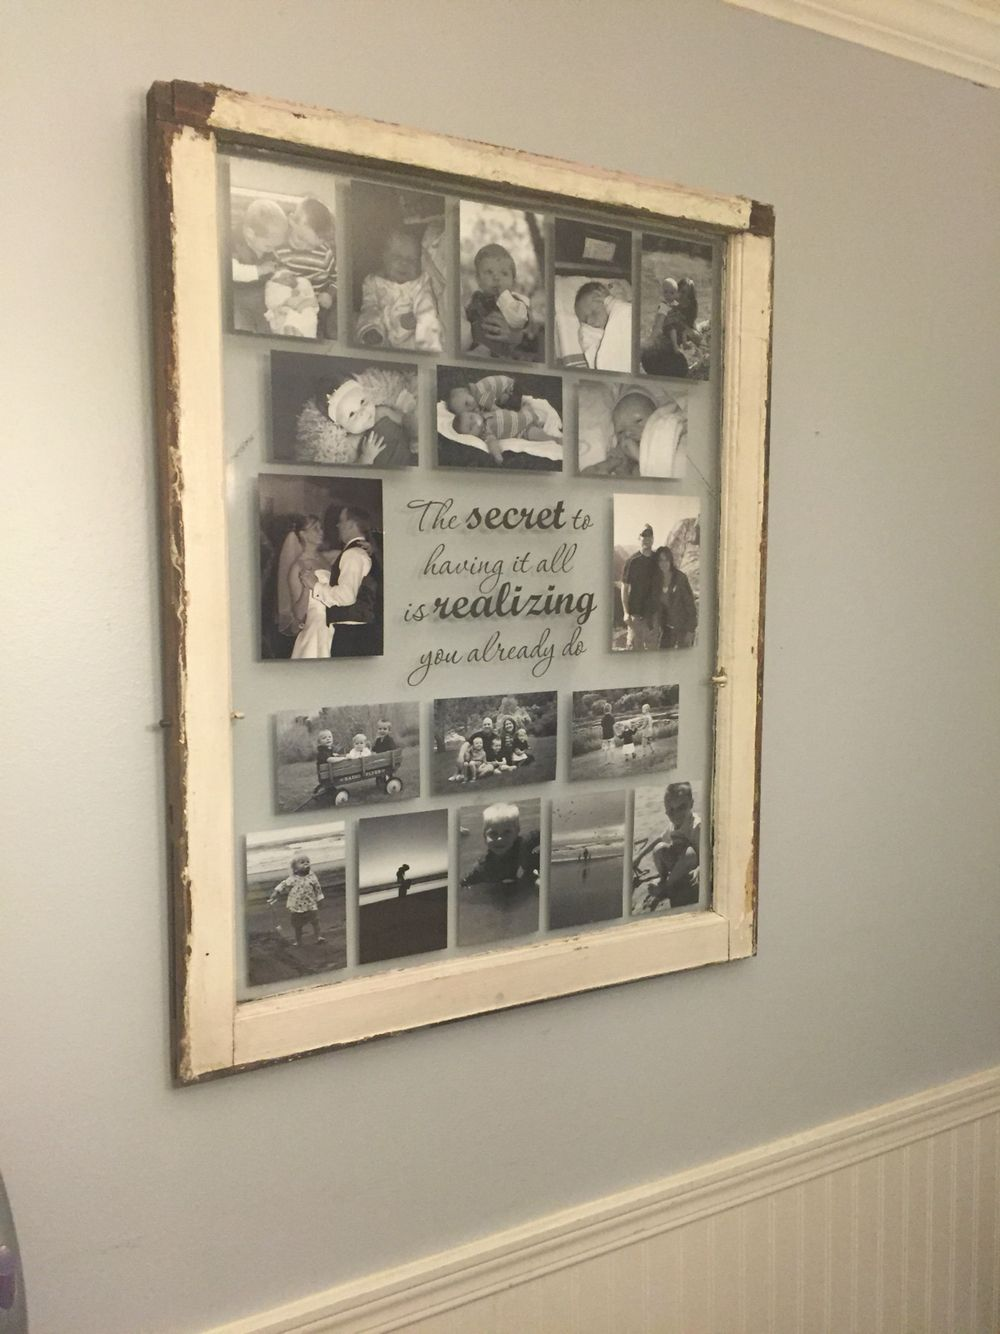 Old single pane window frame turned into a collage photo frame with quote.